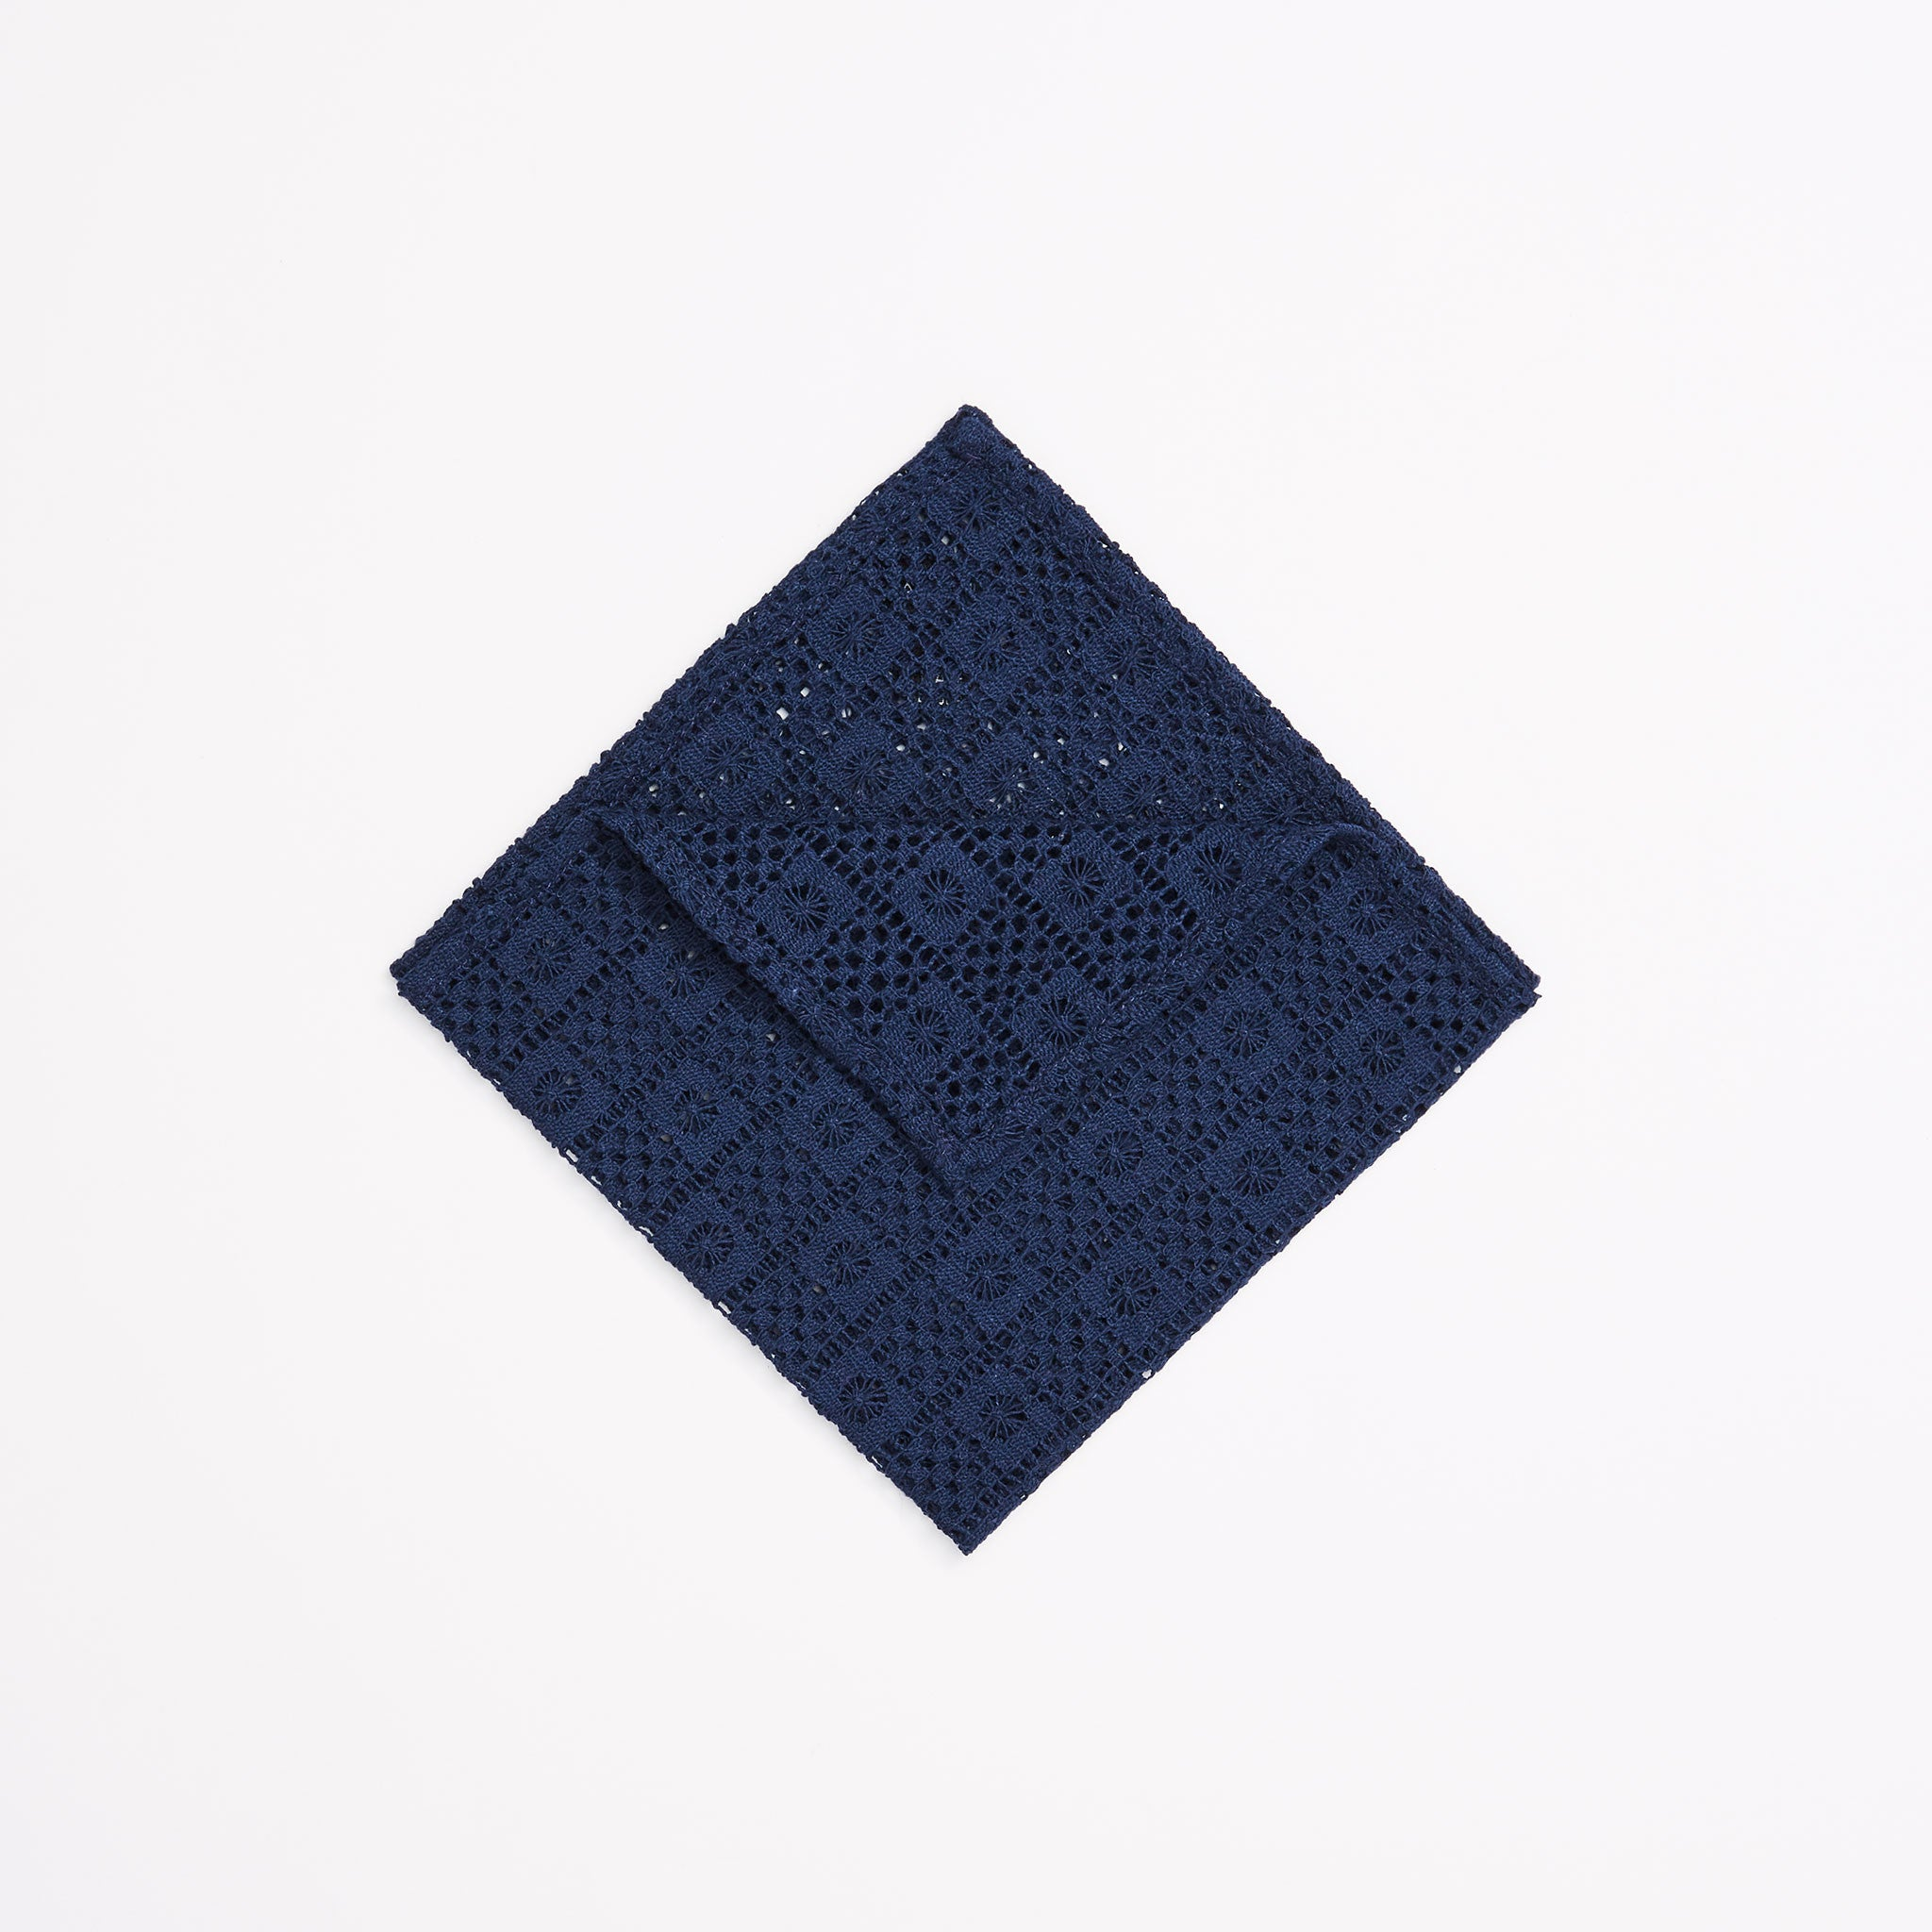 Square Knot Lace Pocket Square